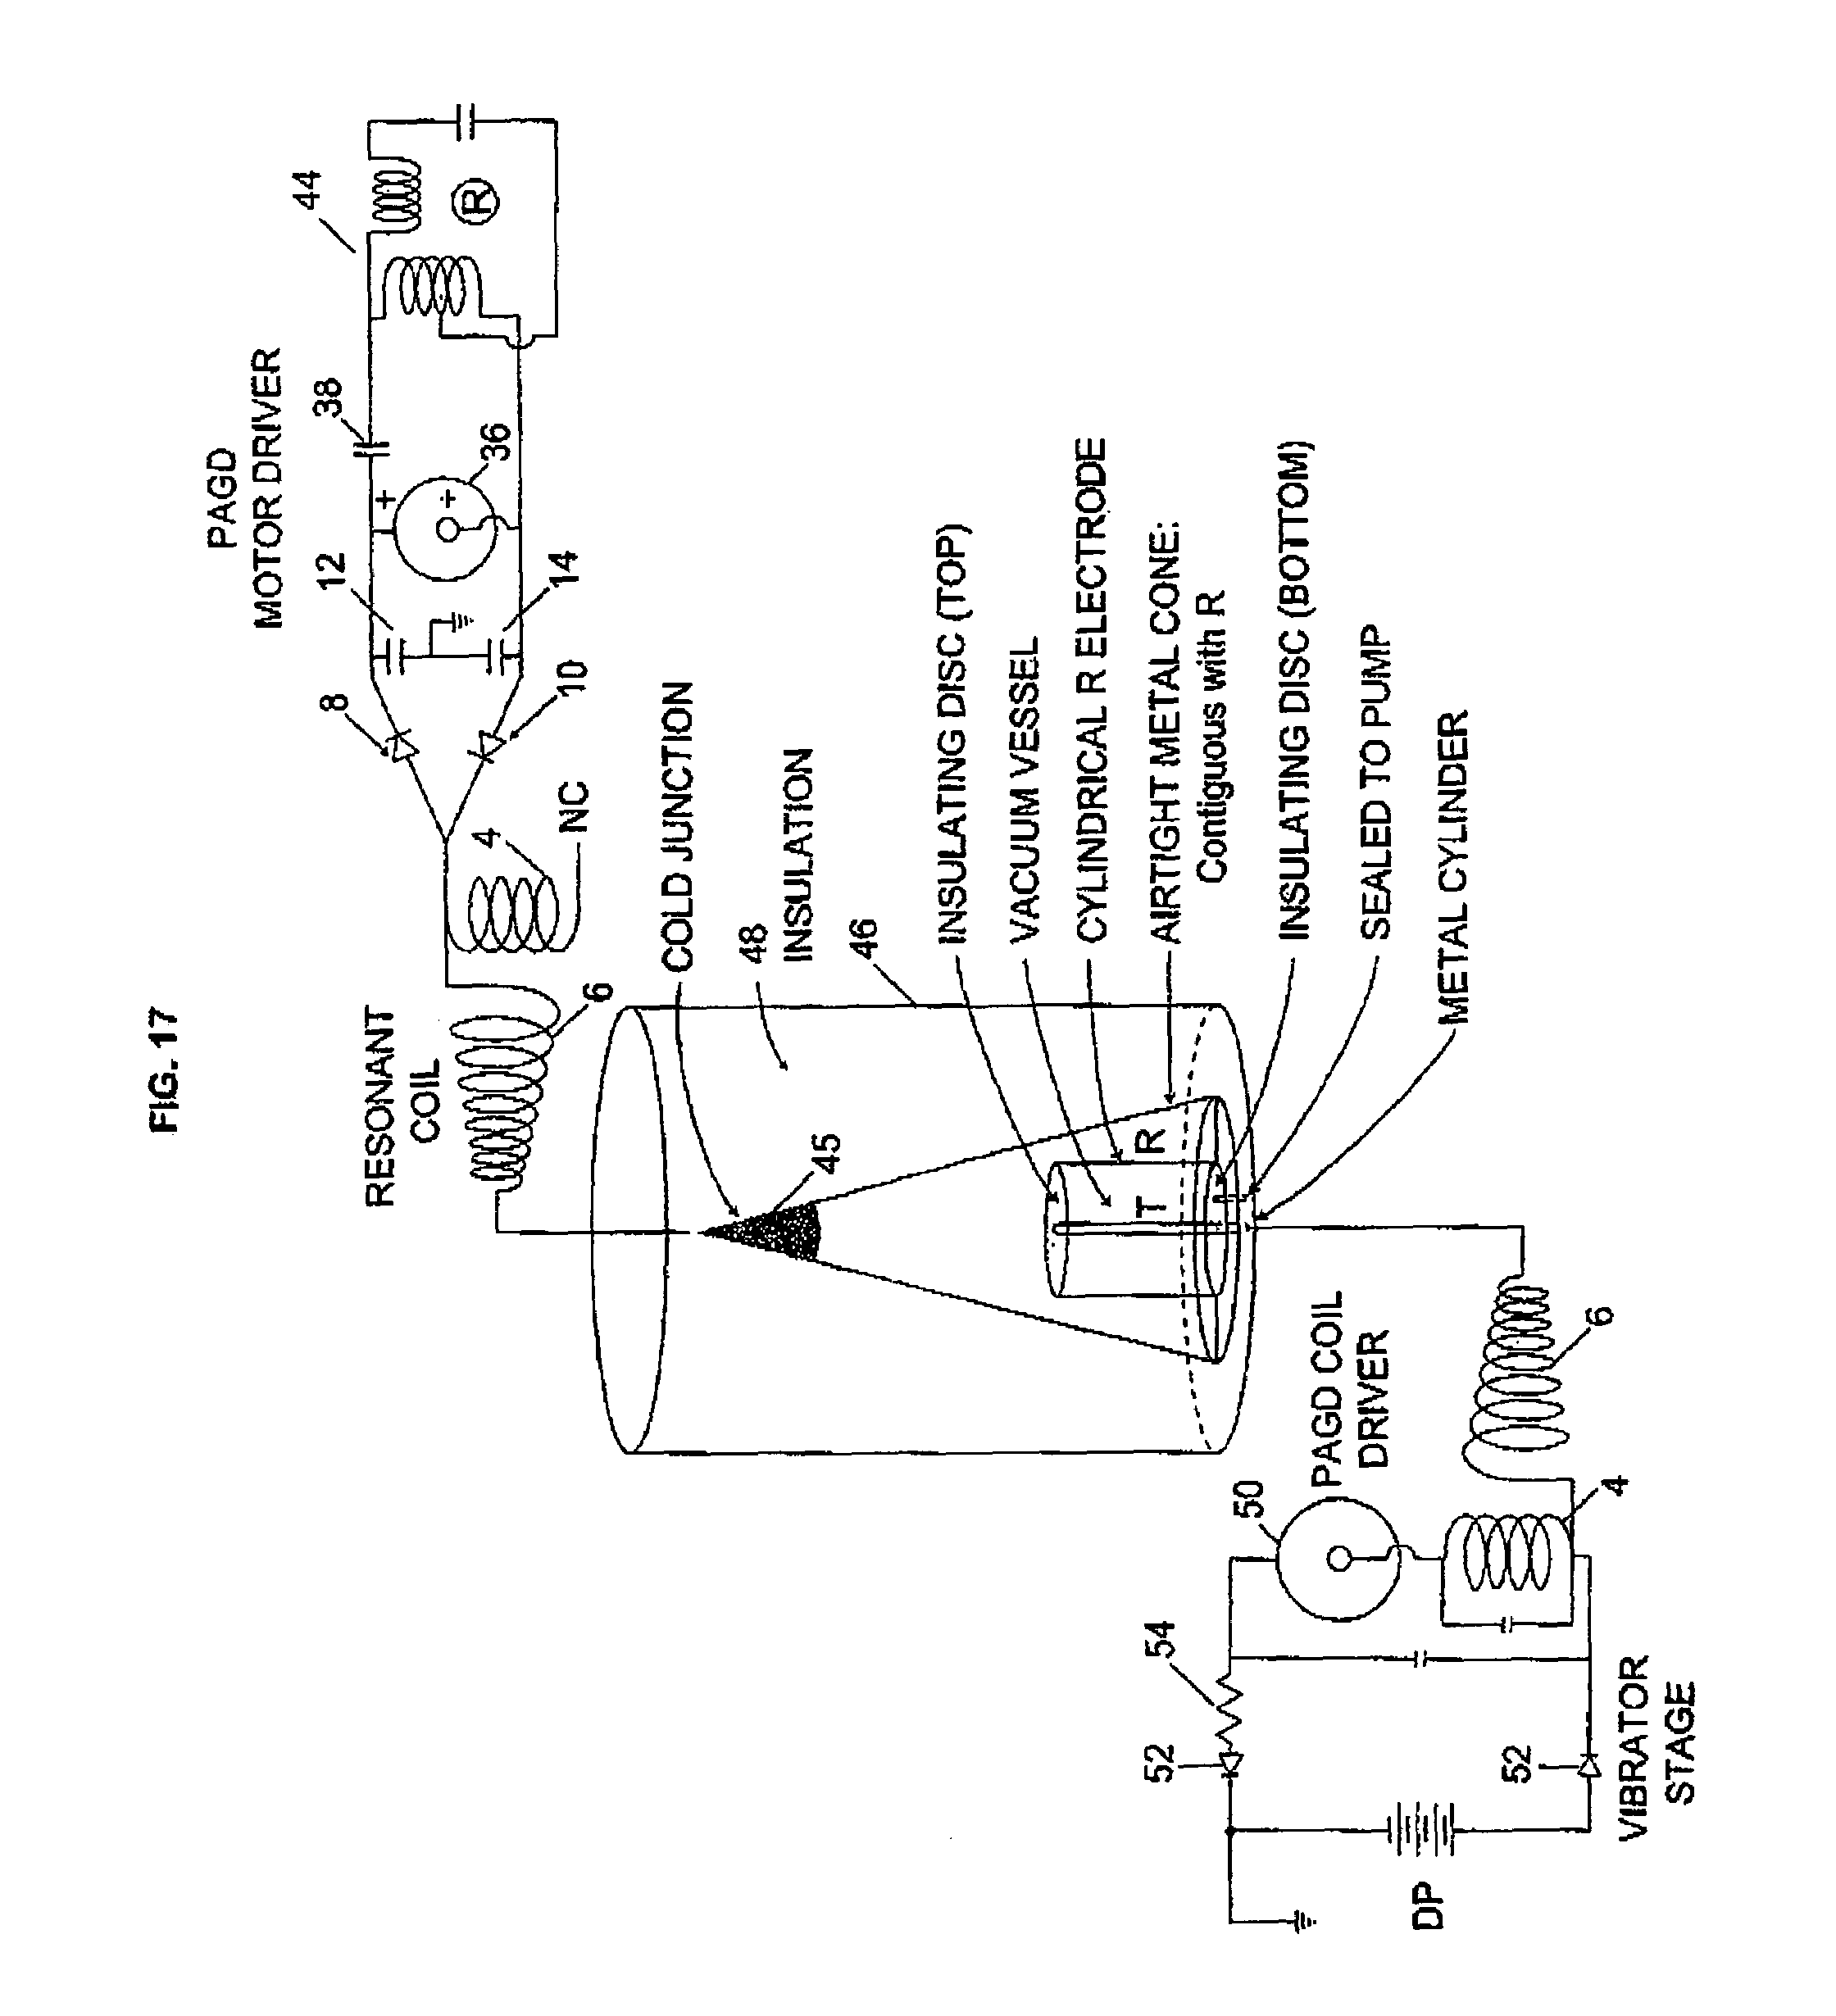 patent us7235945 - energy conversion systems